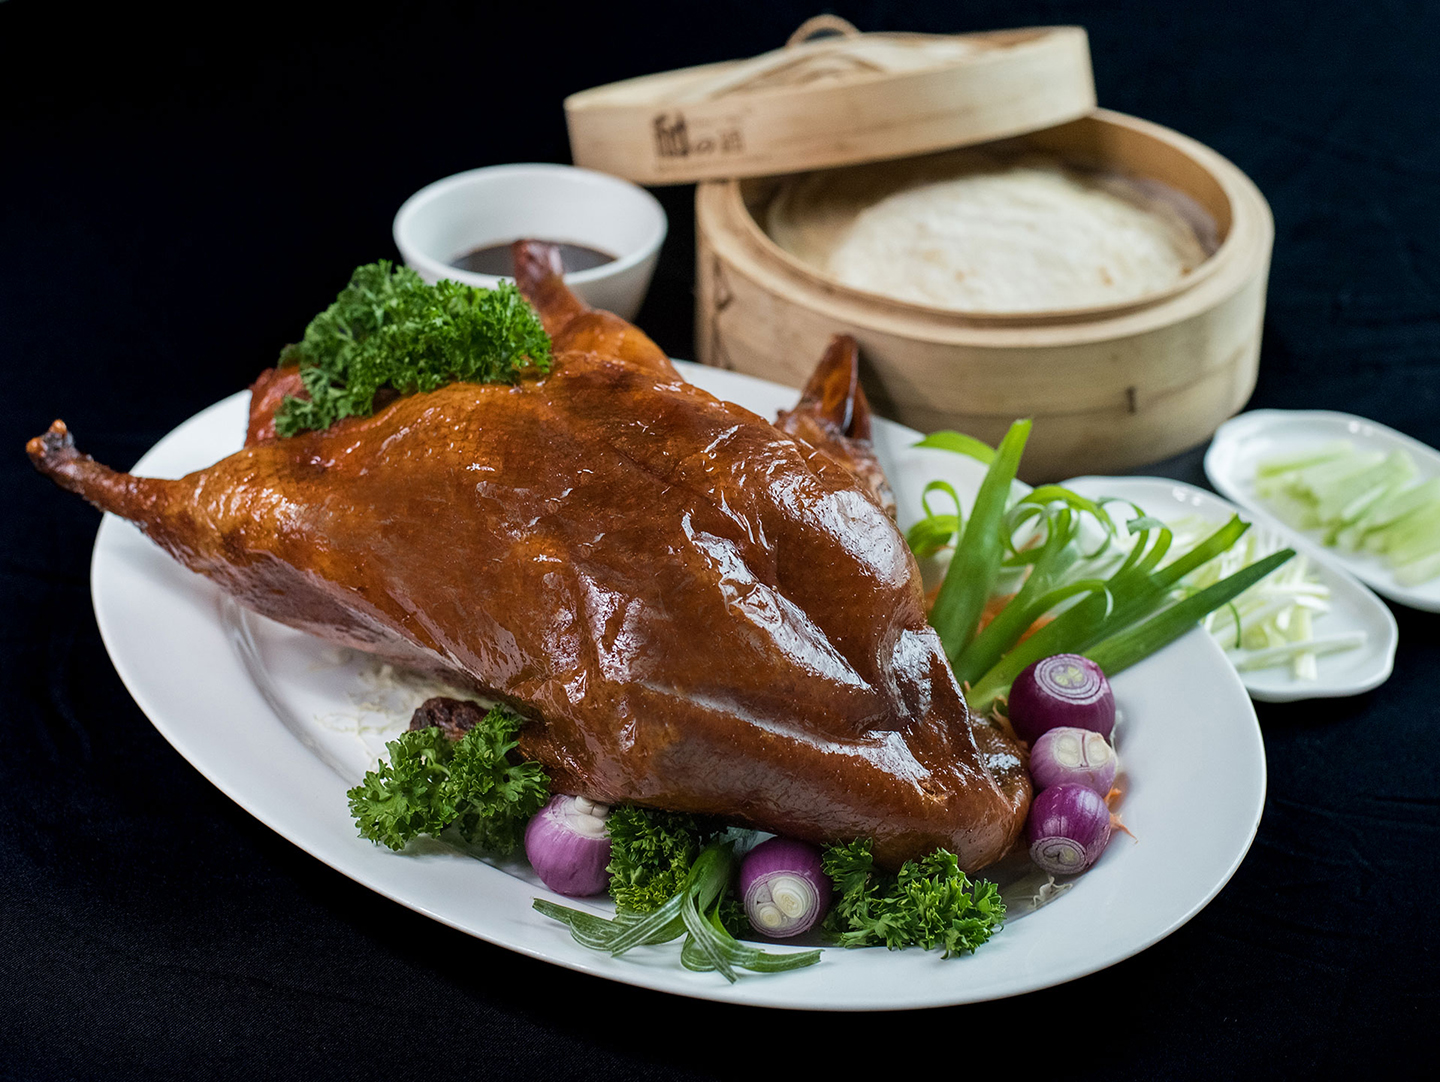 The Hong Kong classic favorite, Roast Goose, is available at Marco Polo Ortigas for a limited time